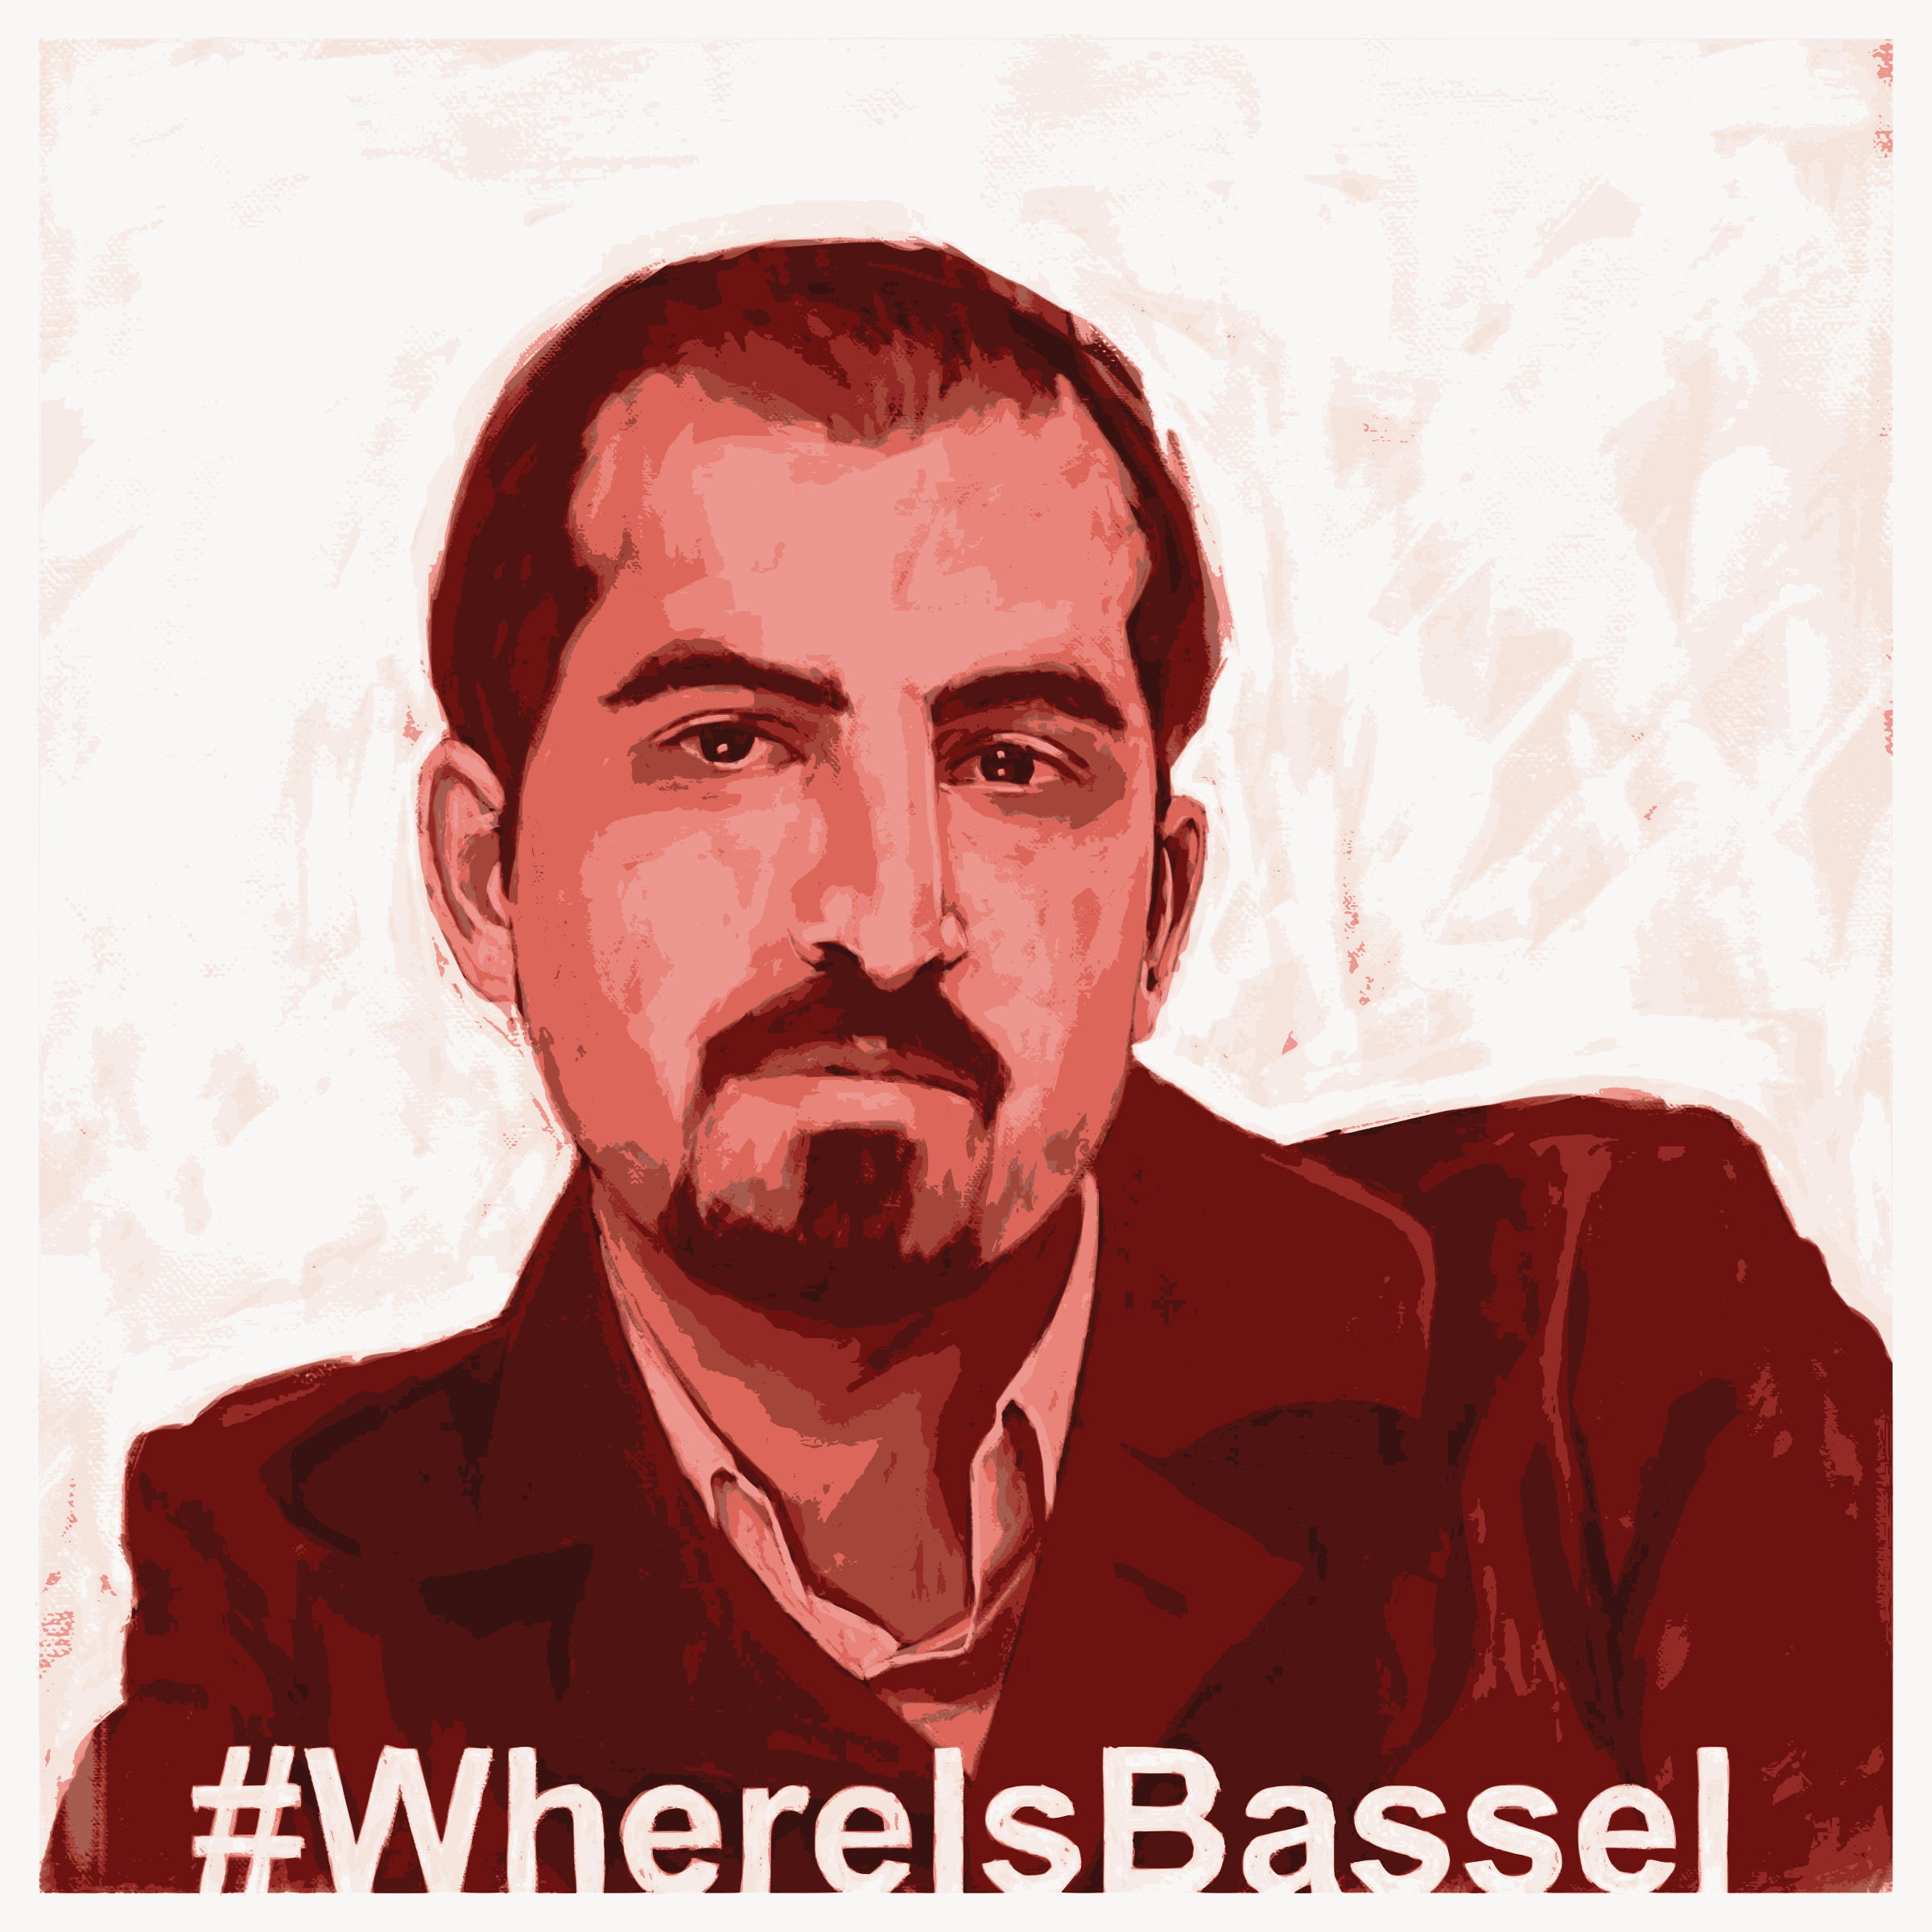 WhereIsBassel Painting (12 colors) by Anonymous